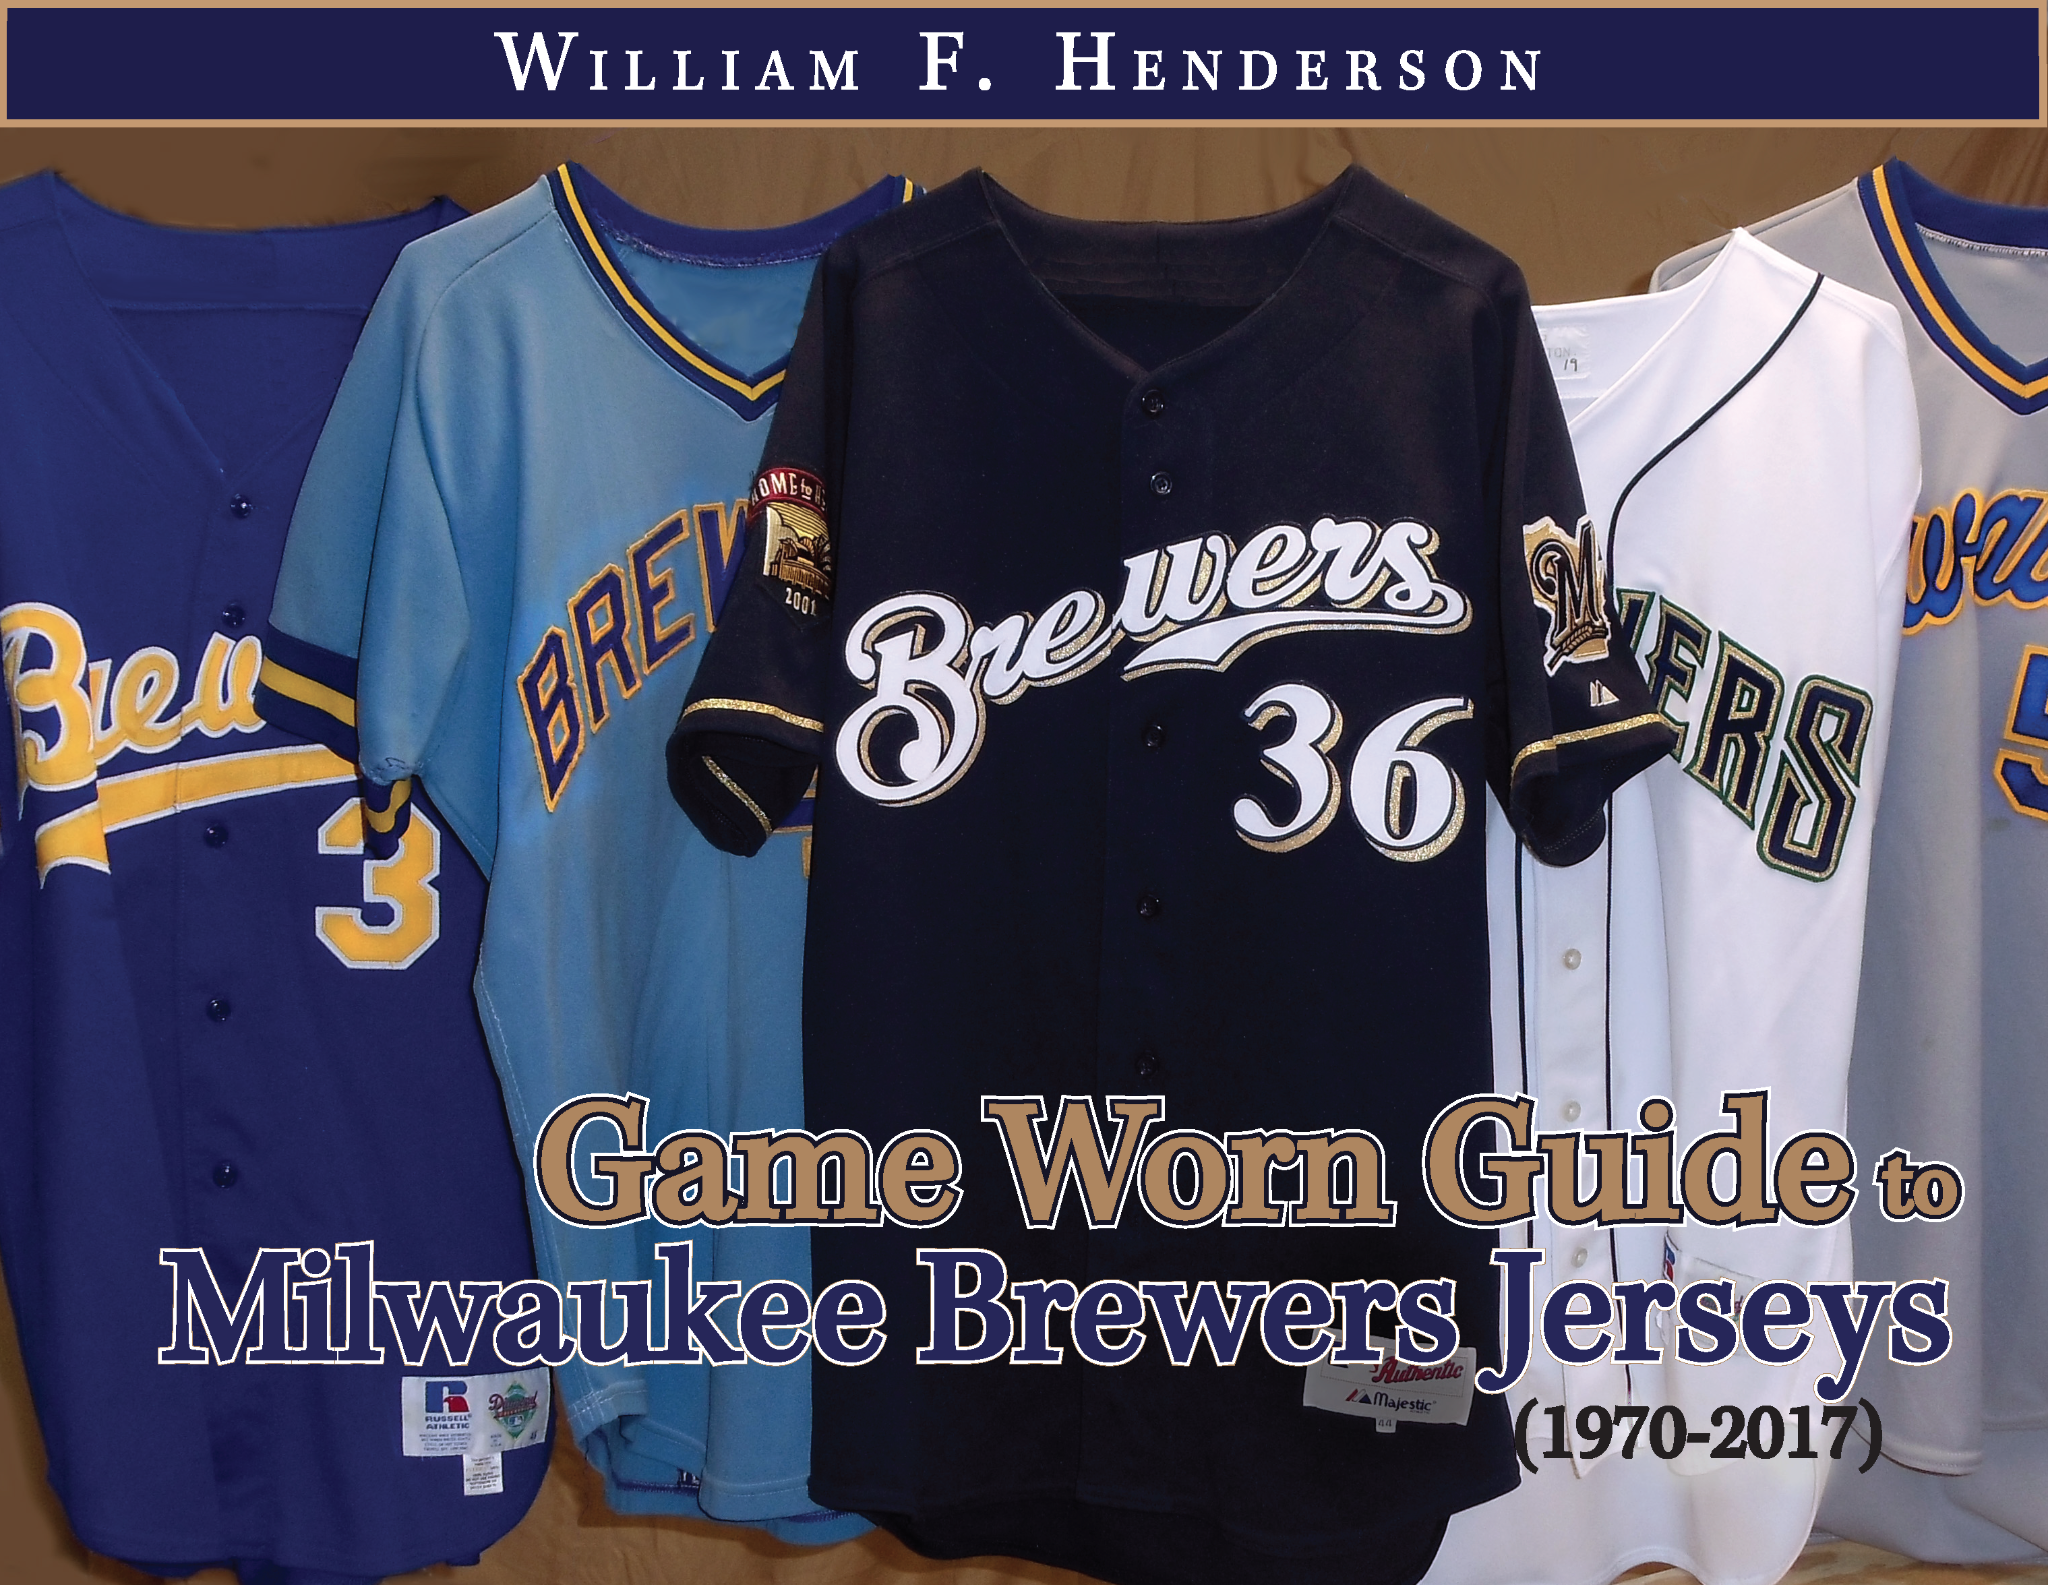 Game Worn Guide to Milwaukee Brewers Jerseys (1970-2017)